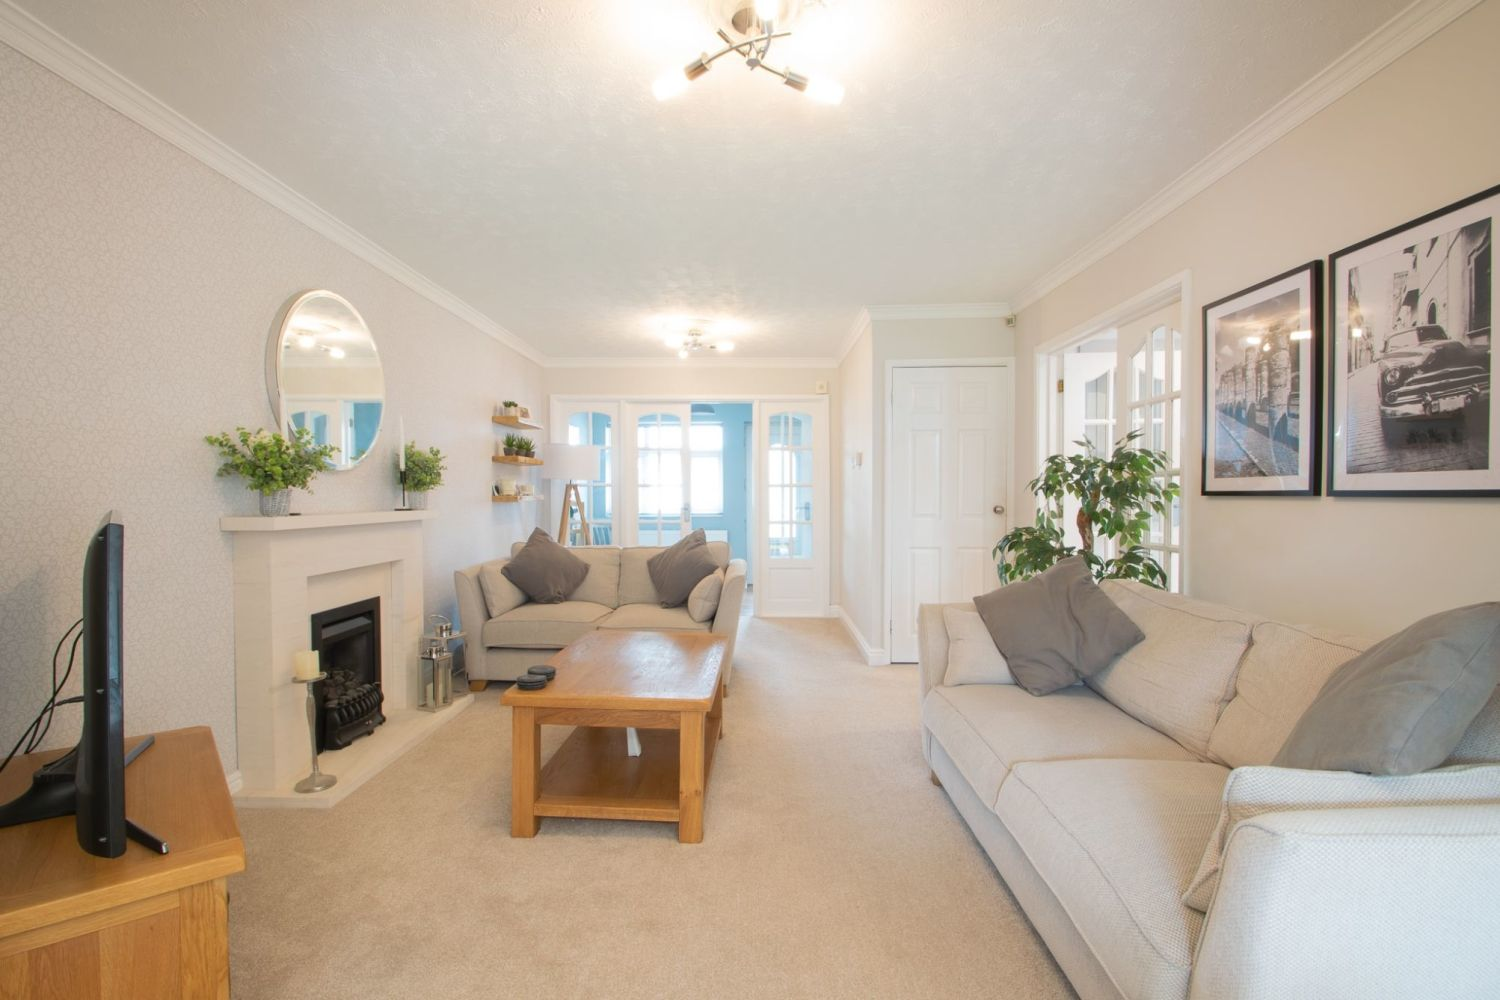 3 bed detached for sale in Clyde Avenue, Halesowen 5